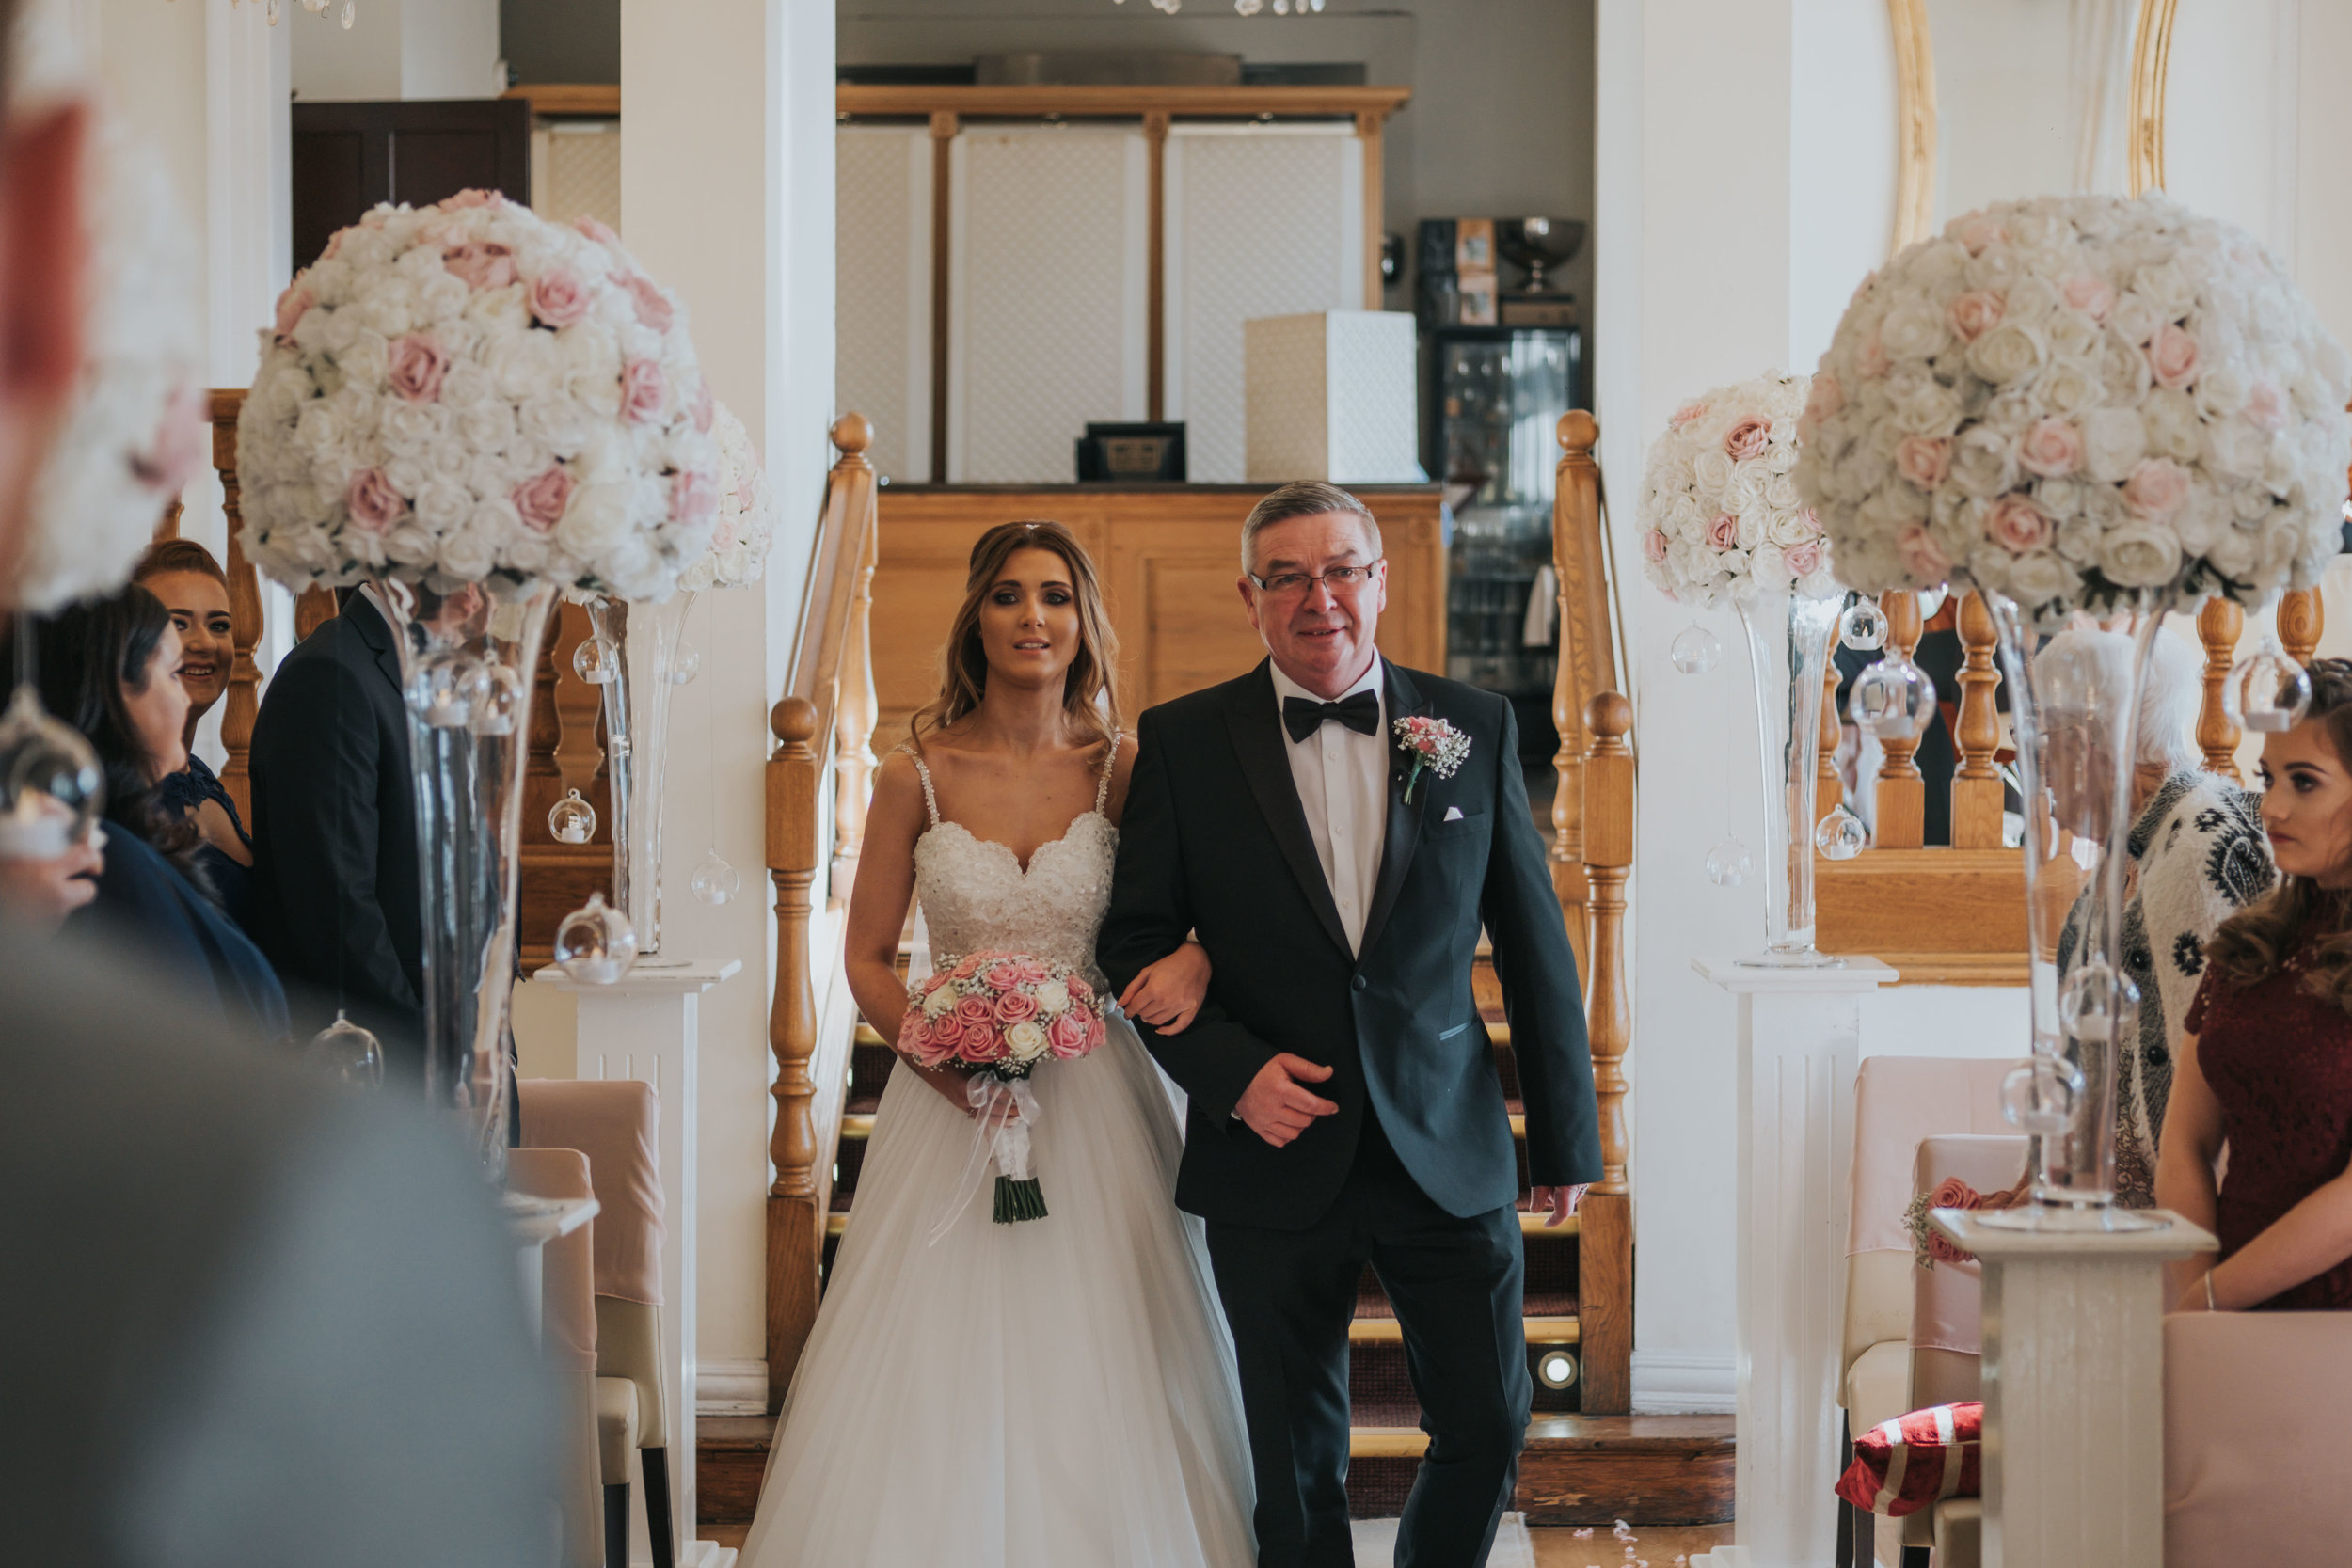 the bride and her father walking down the aisle on her wedding day at west tower exclusive wedding venue in ormskirk